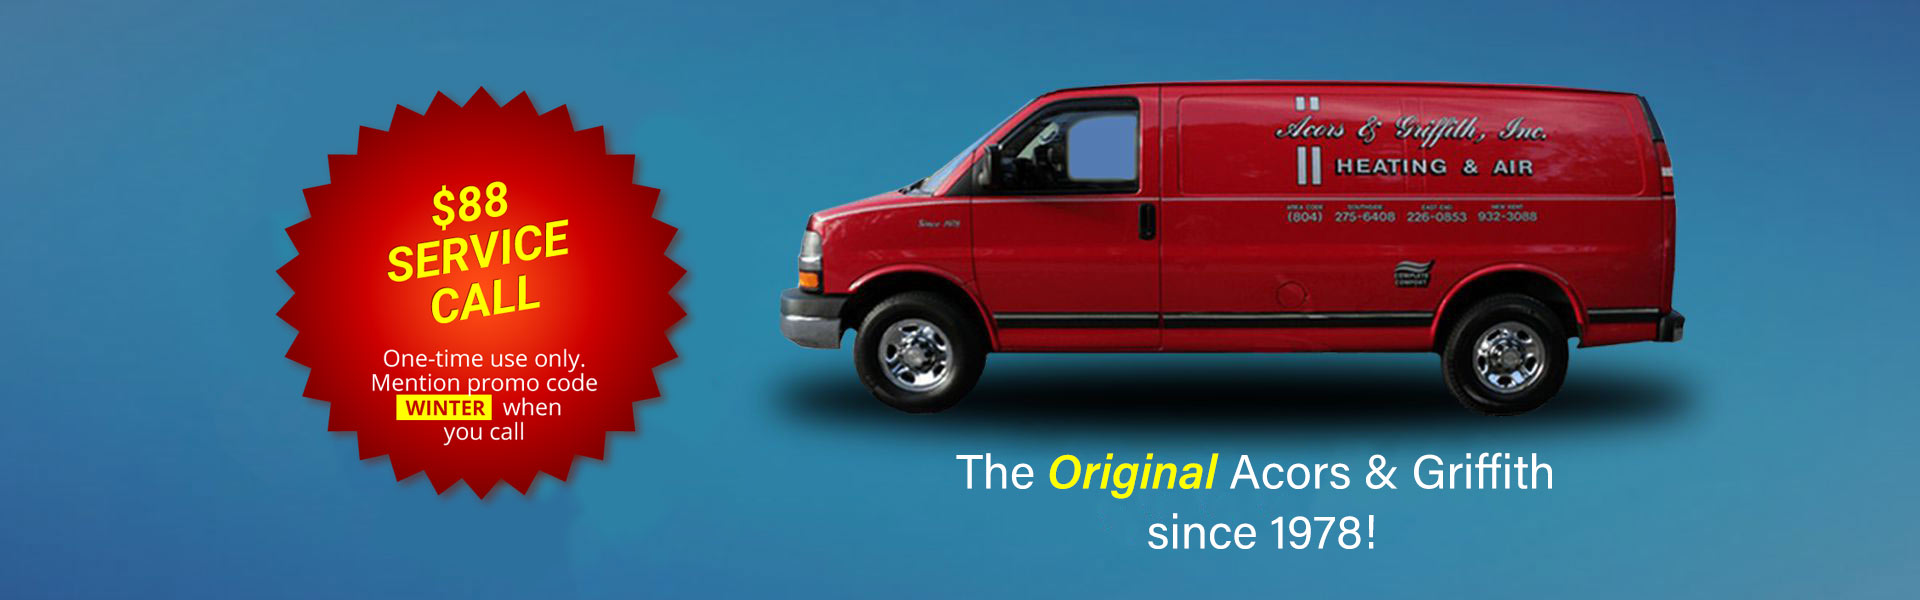 Heating and Air Conditioning Service Van in Richmond VA